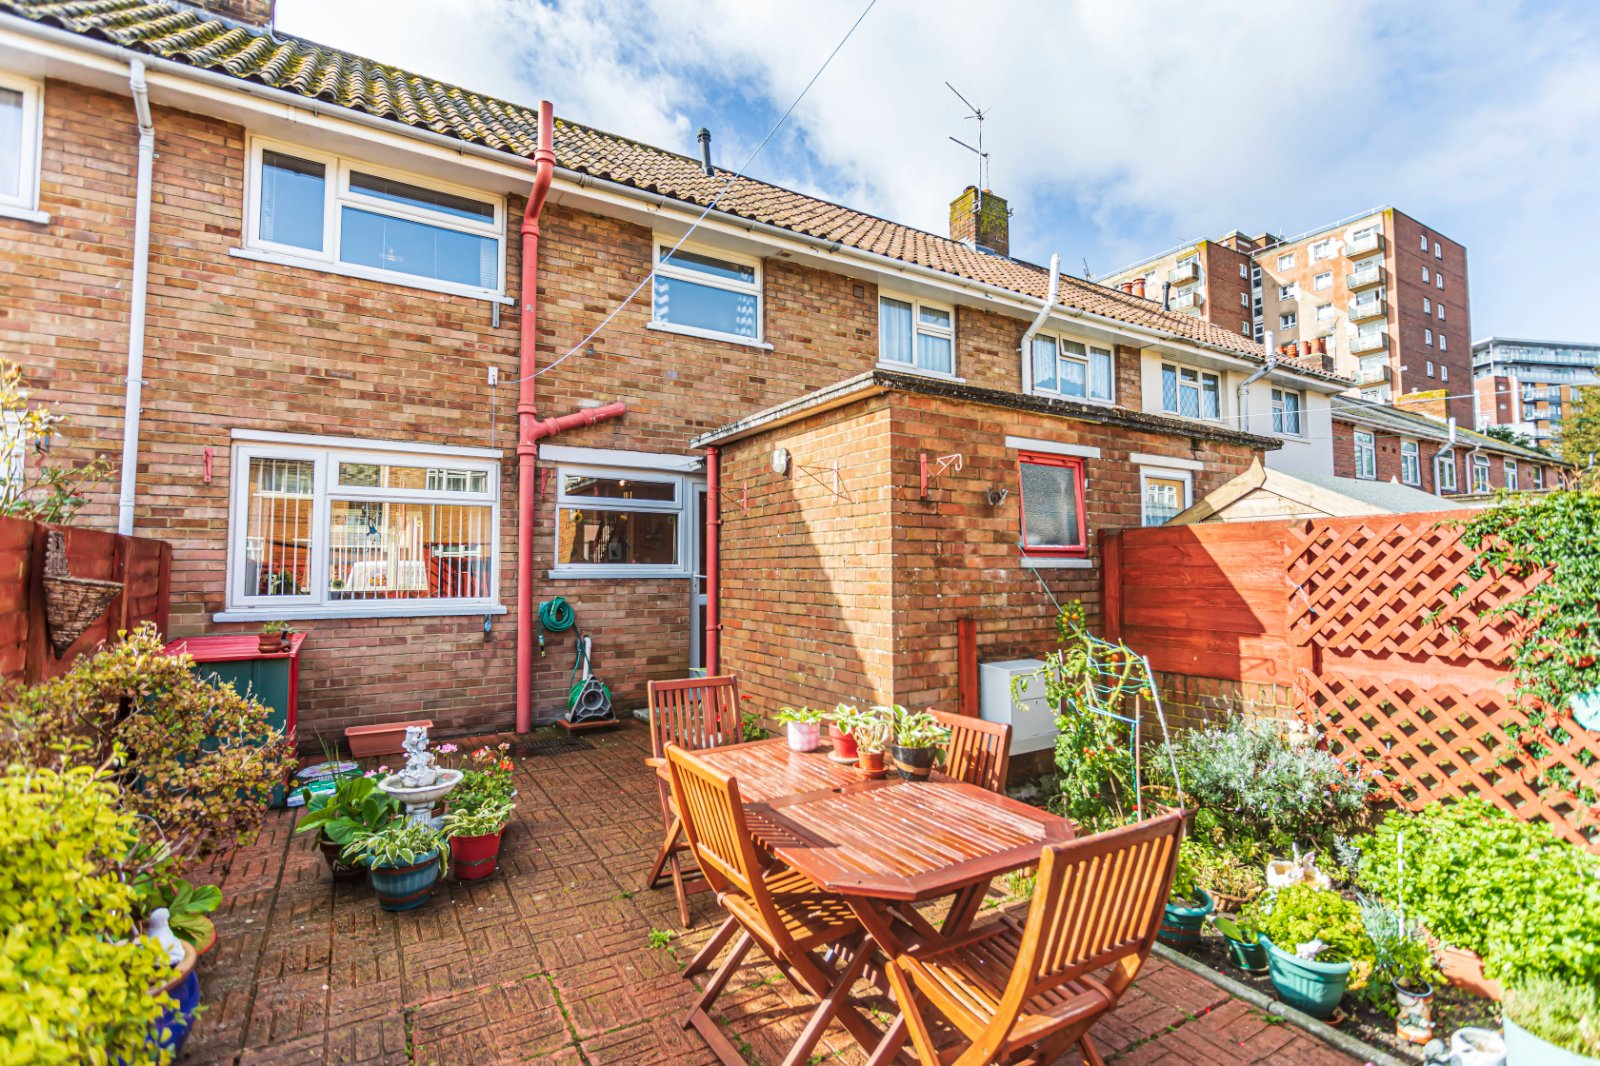 2 bed house for sale in Poole Quay - Property Image 1